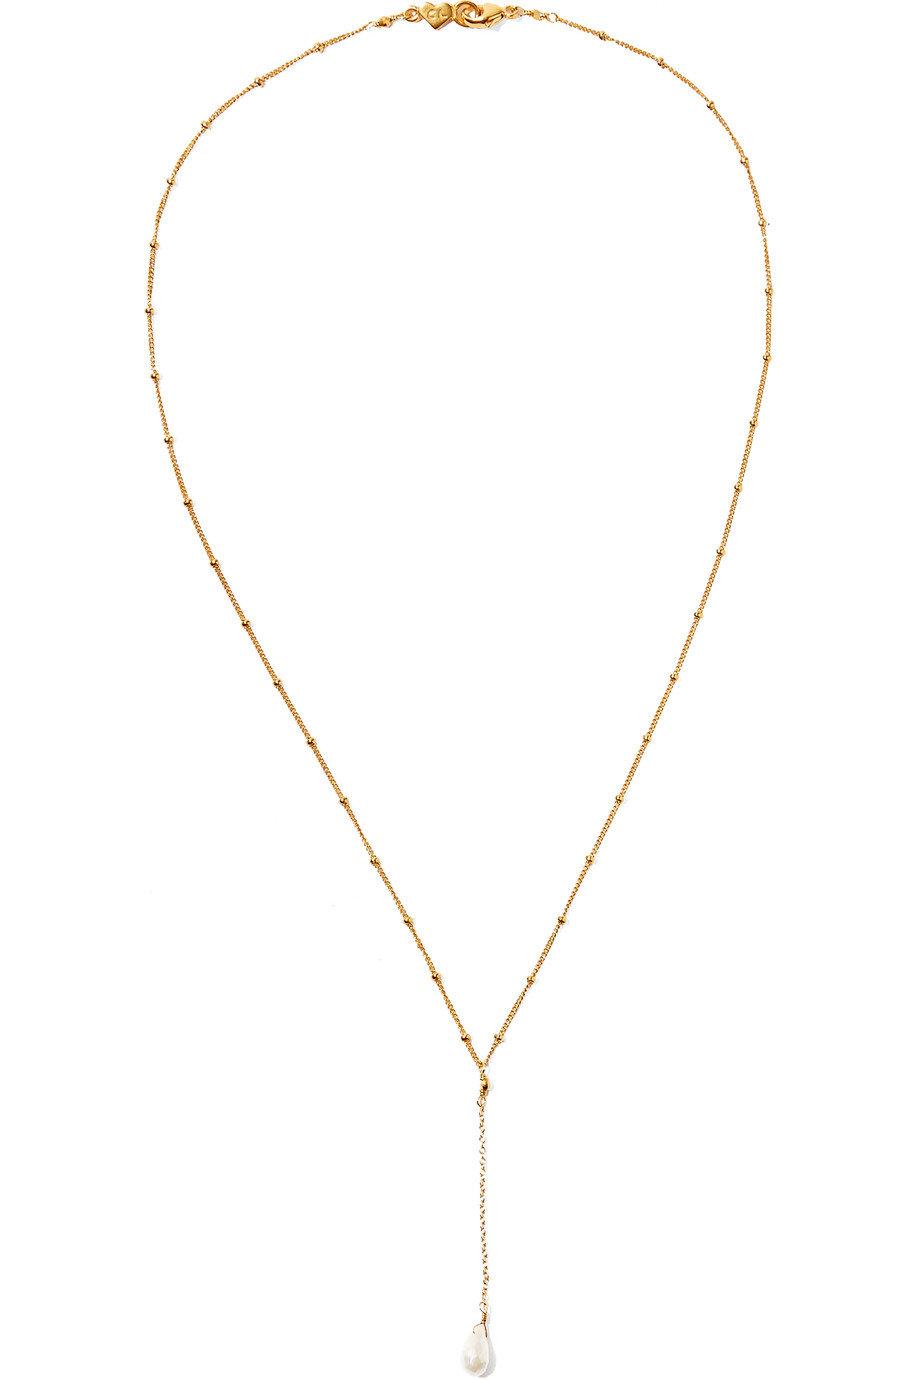 Chan Luu Gold-Plated Silverite Necklace, Women's